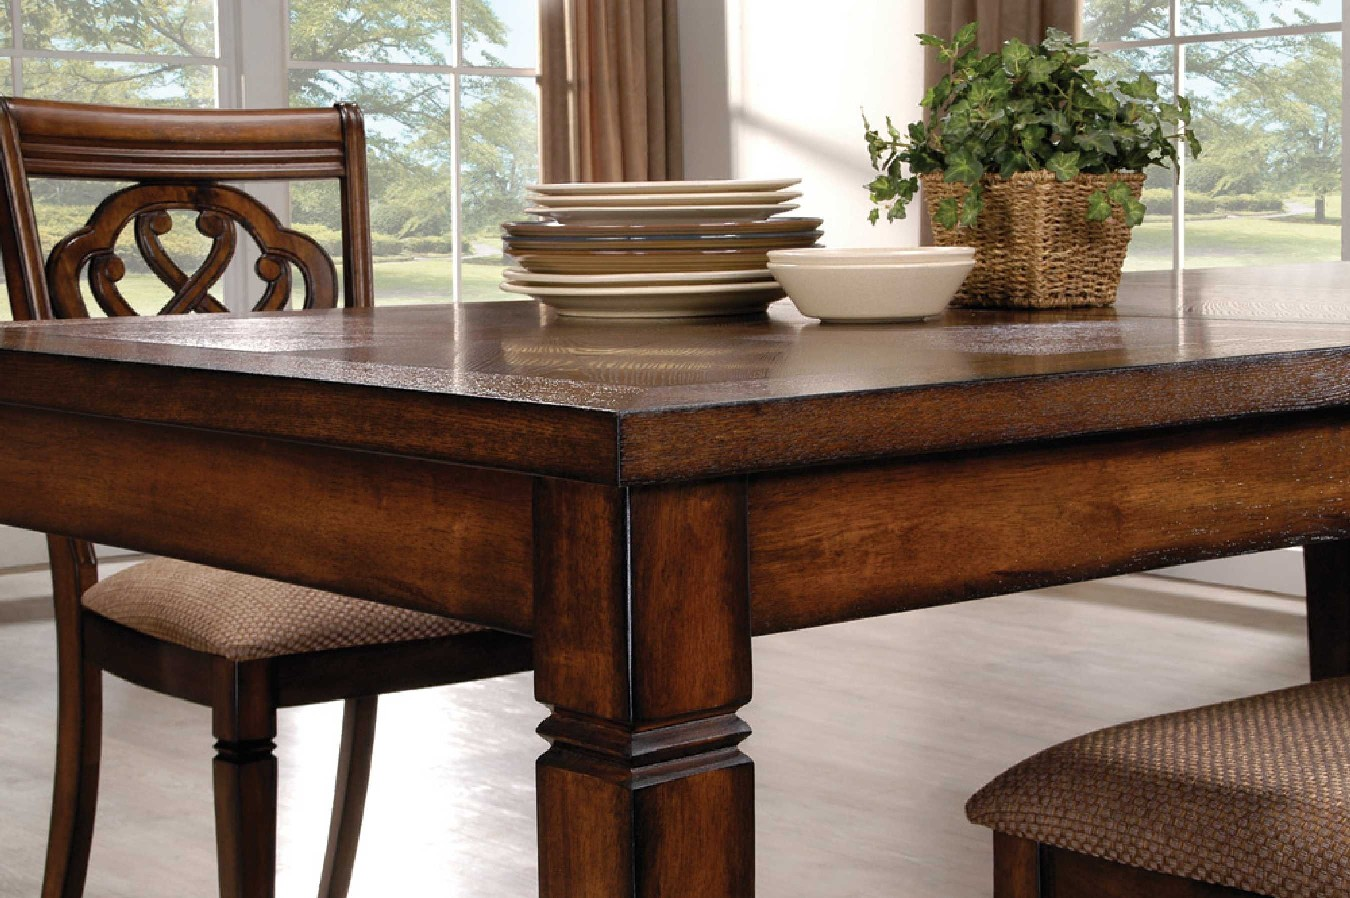 Oak Transitional Style 7 Piece Dining Room Table And Chairs Set. Full resolution  img, nominally Width 1350 Height 898 pixels, img with #643C23.